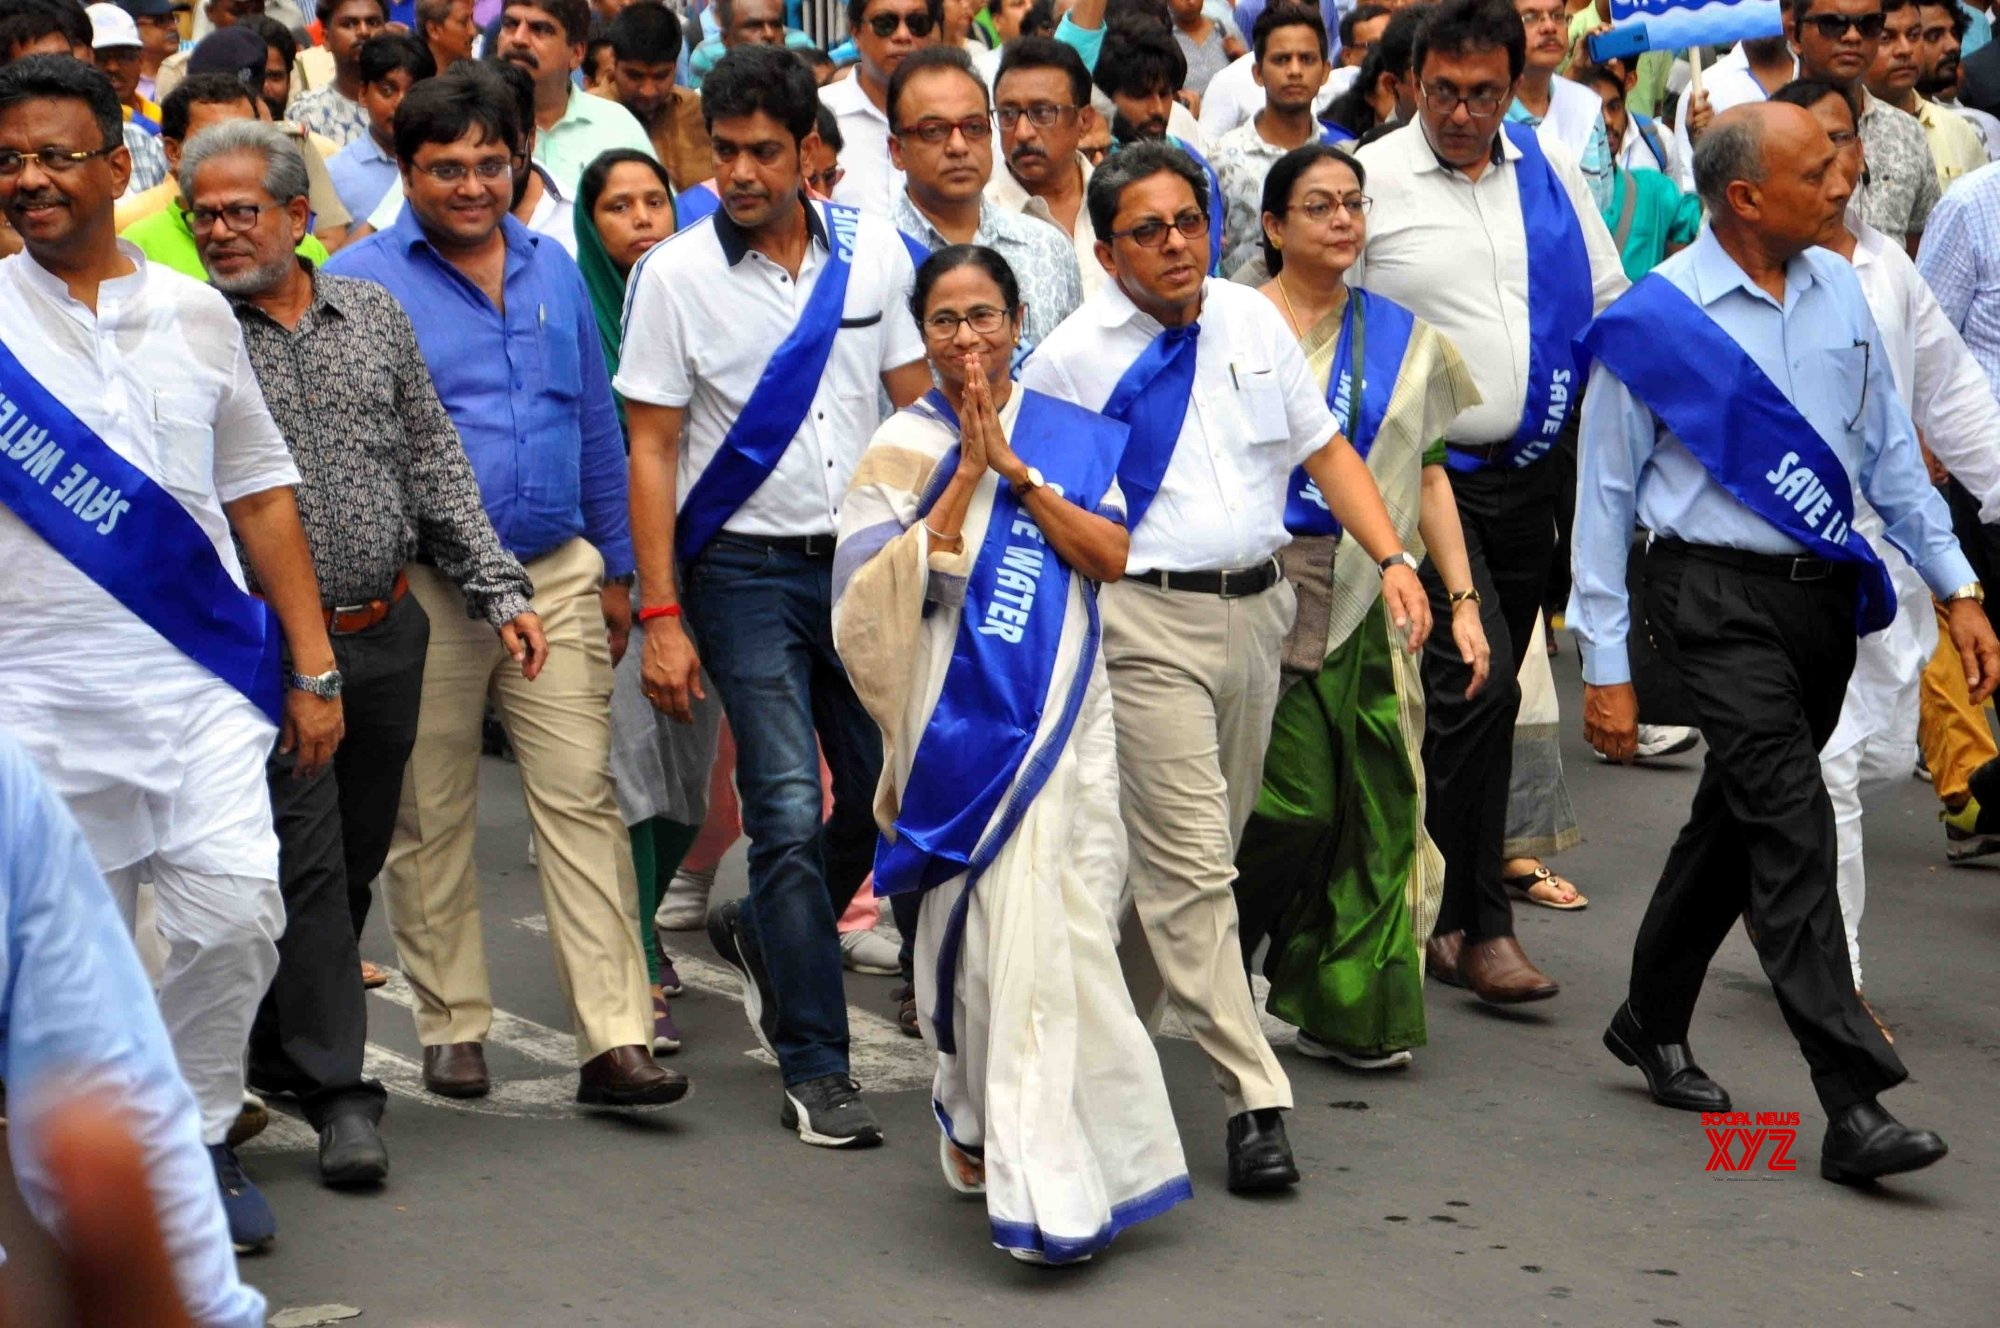 Mamata marches on Kolkata streets to spread awareness about water conservation